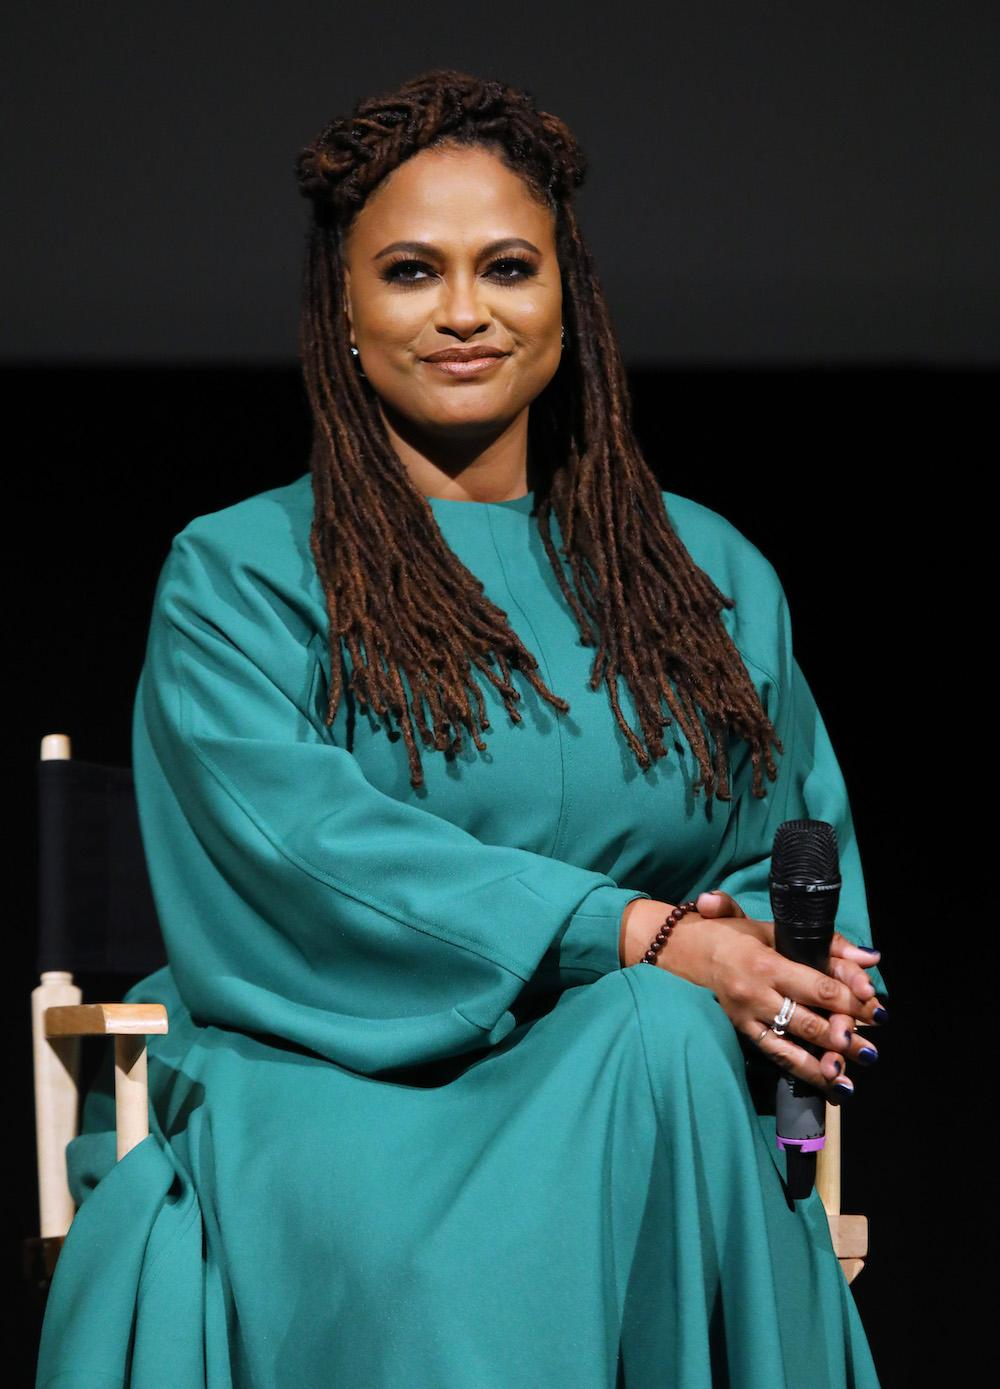 Filmmaker Ava DuVernay speaks onstage during FYC Event For Netflix's 'When They See Us' panel at Paramount Theater on the Paramount Studios lot on August 11, 2019 in Hollywood, California. (Photo by JC Olivera/Getty Images)